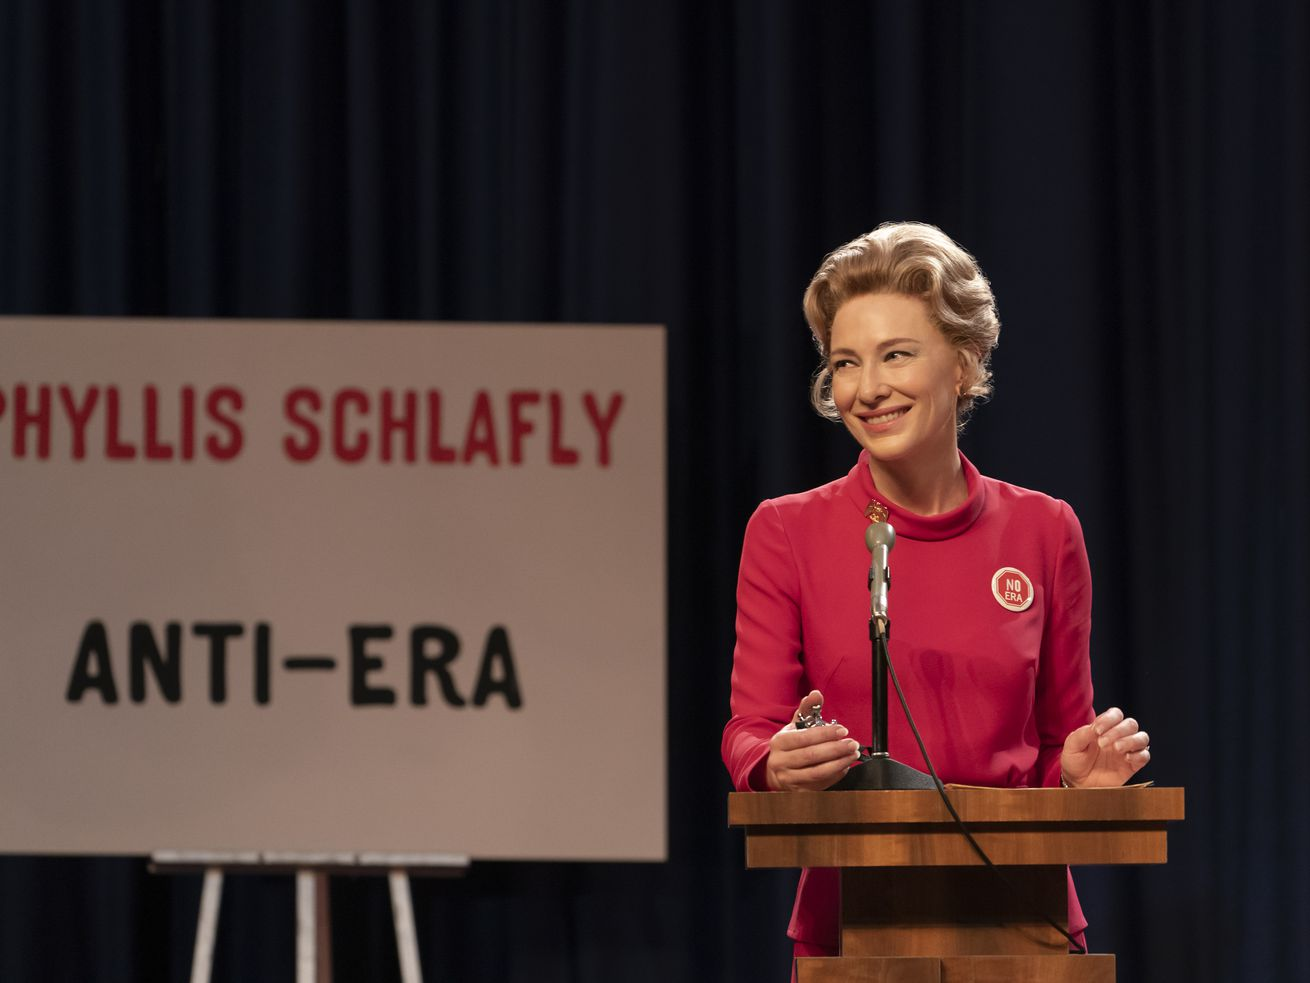 Cate Blanchett as Phyllis Schlafly presents an anti-ERA take at a debate with Betty Friedan.